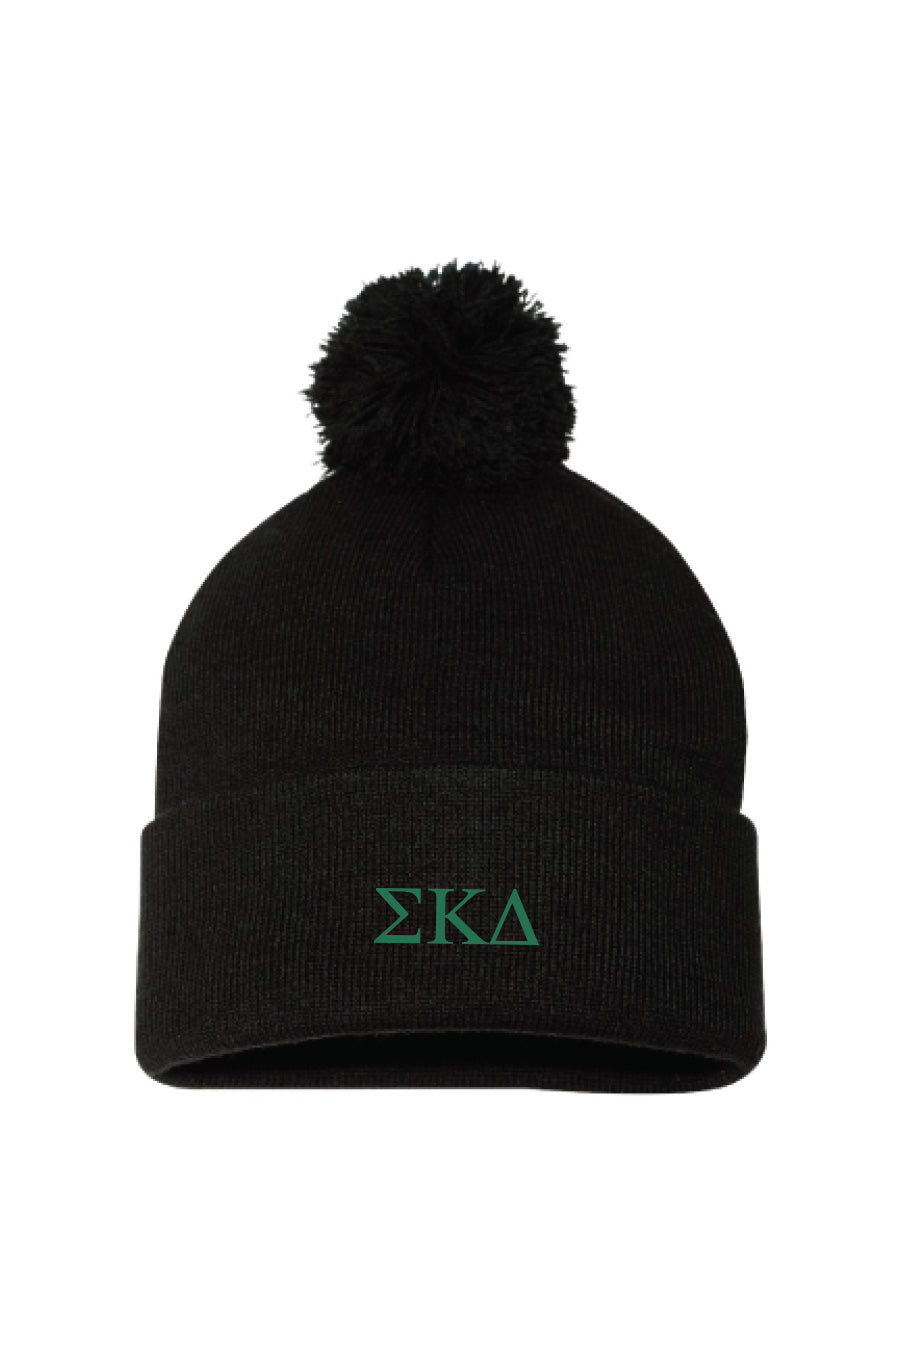 Simple Letters Beanie